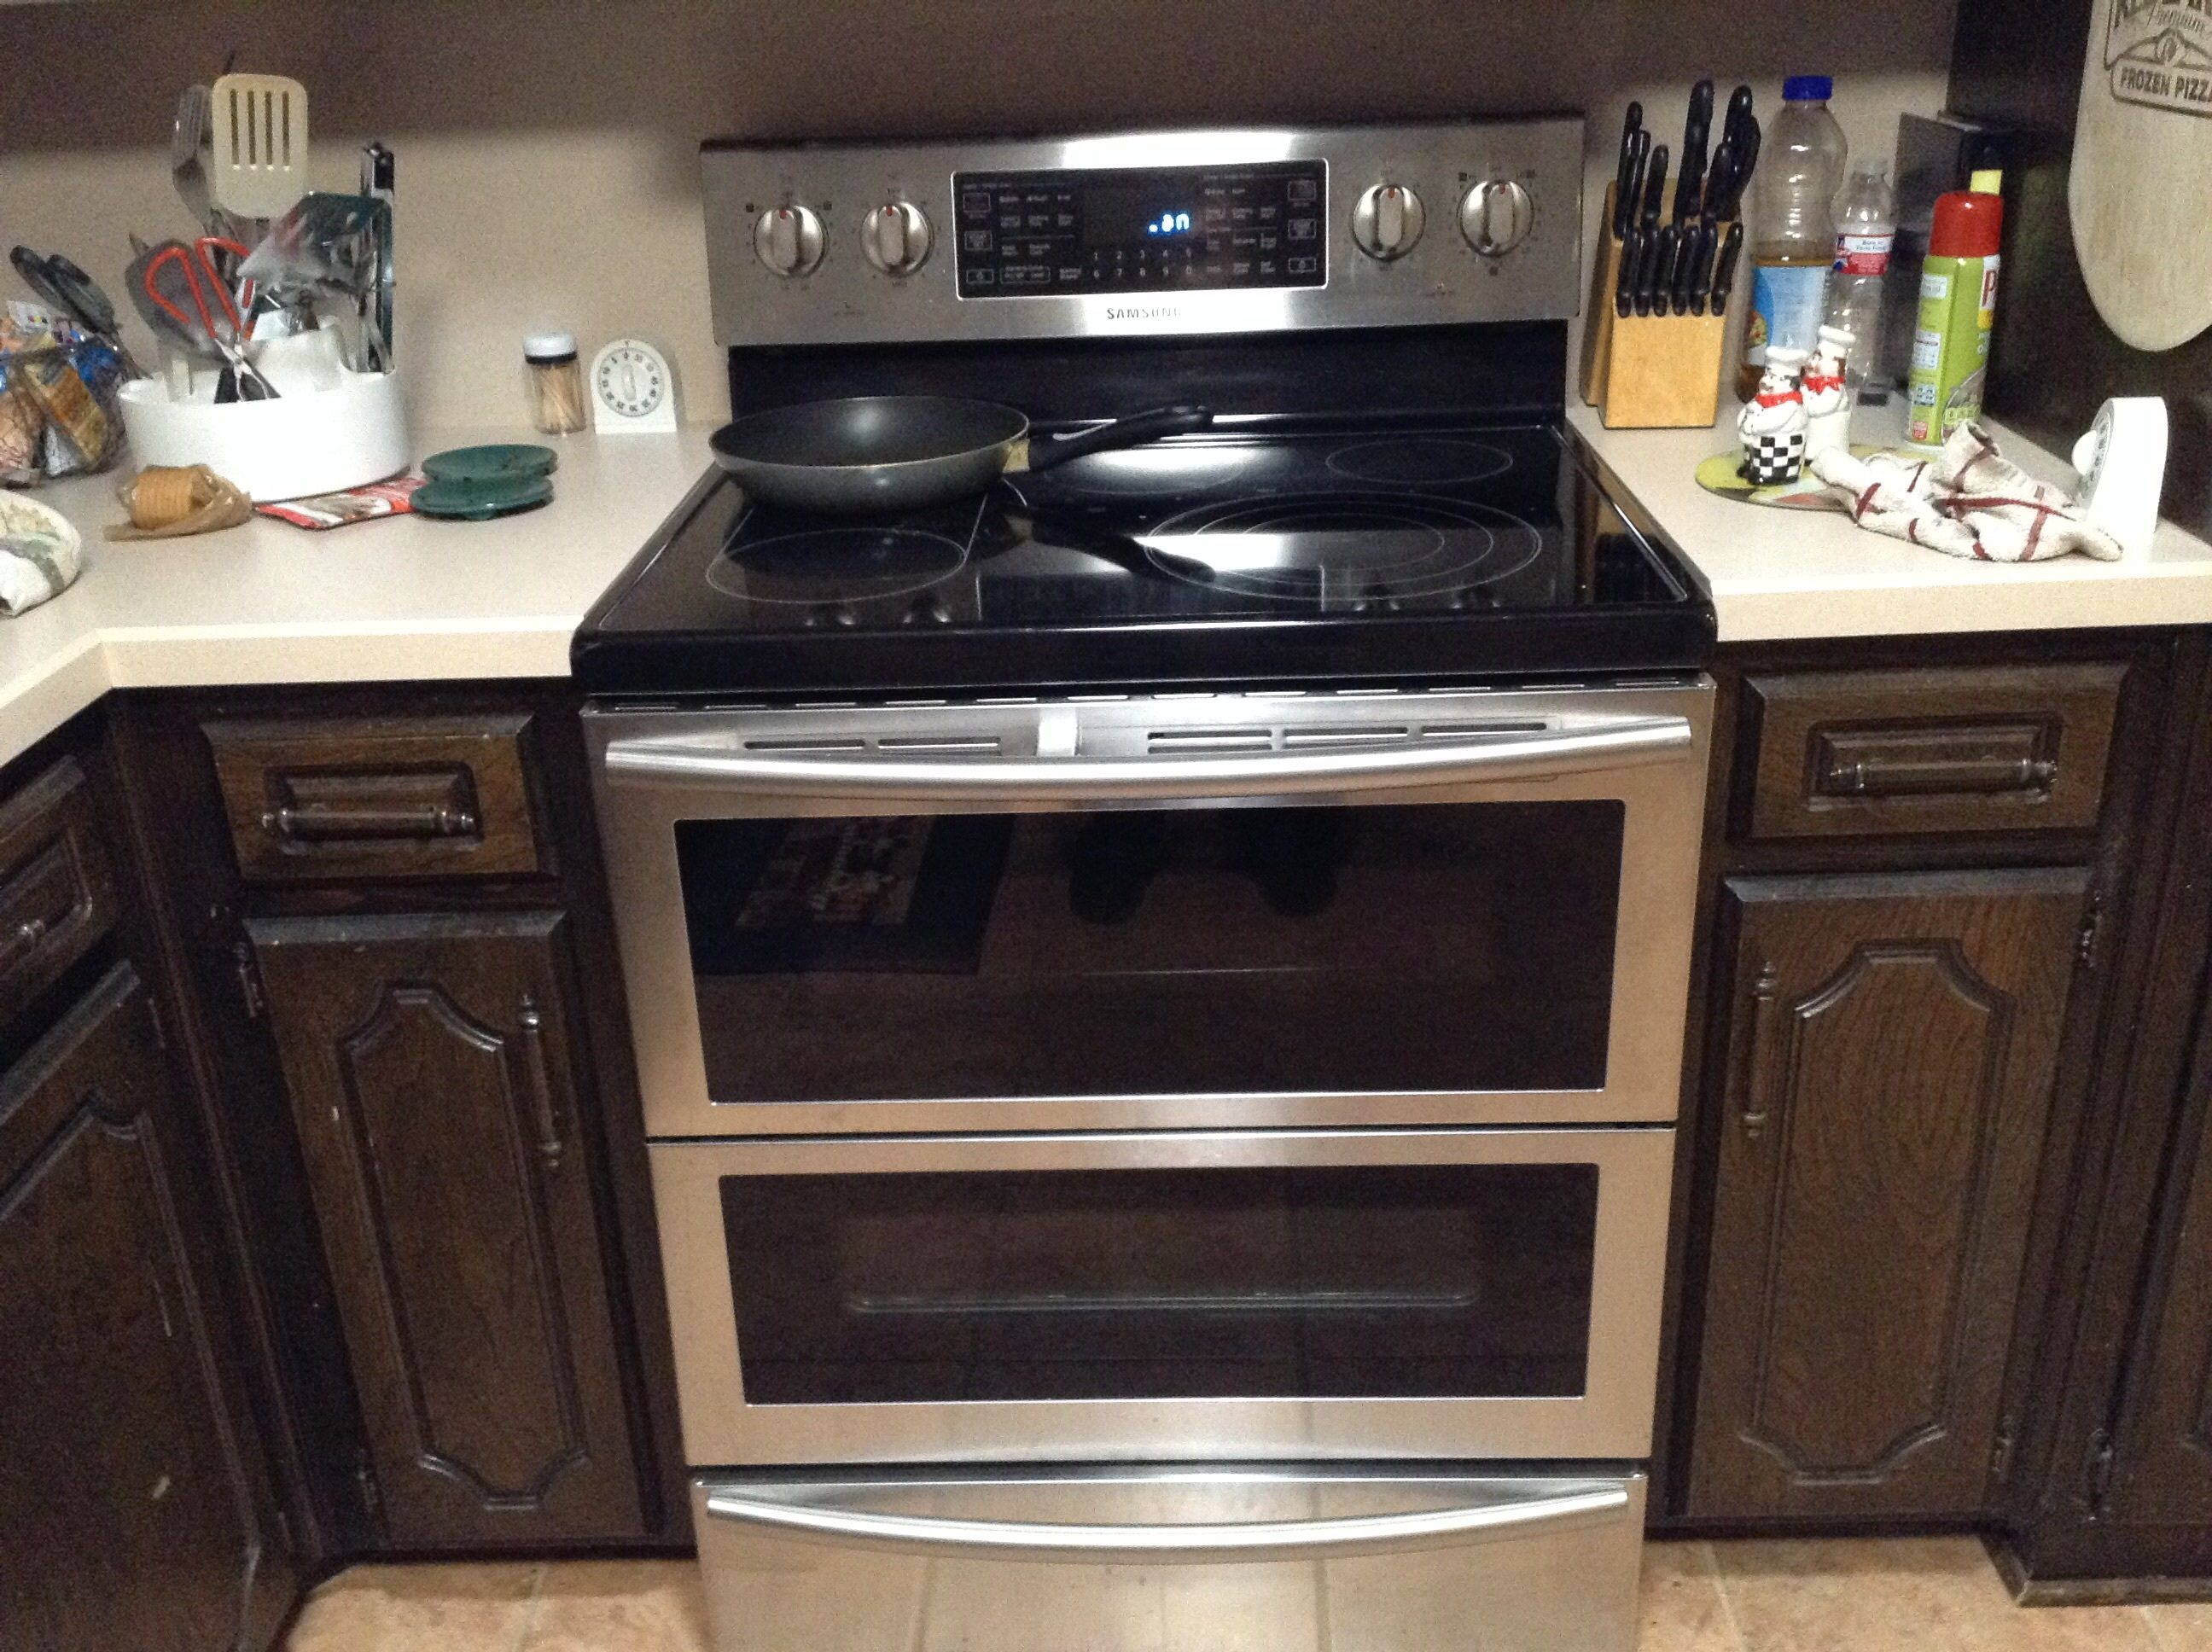 Stoves And Ovens ~ Top complaints and reviews about samsung stove oven range